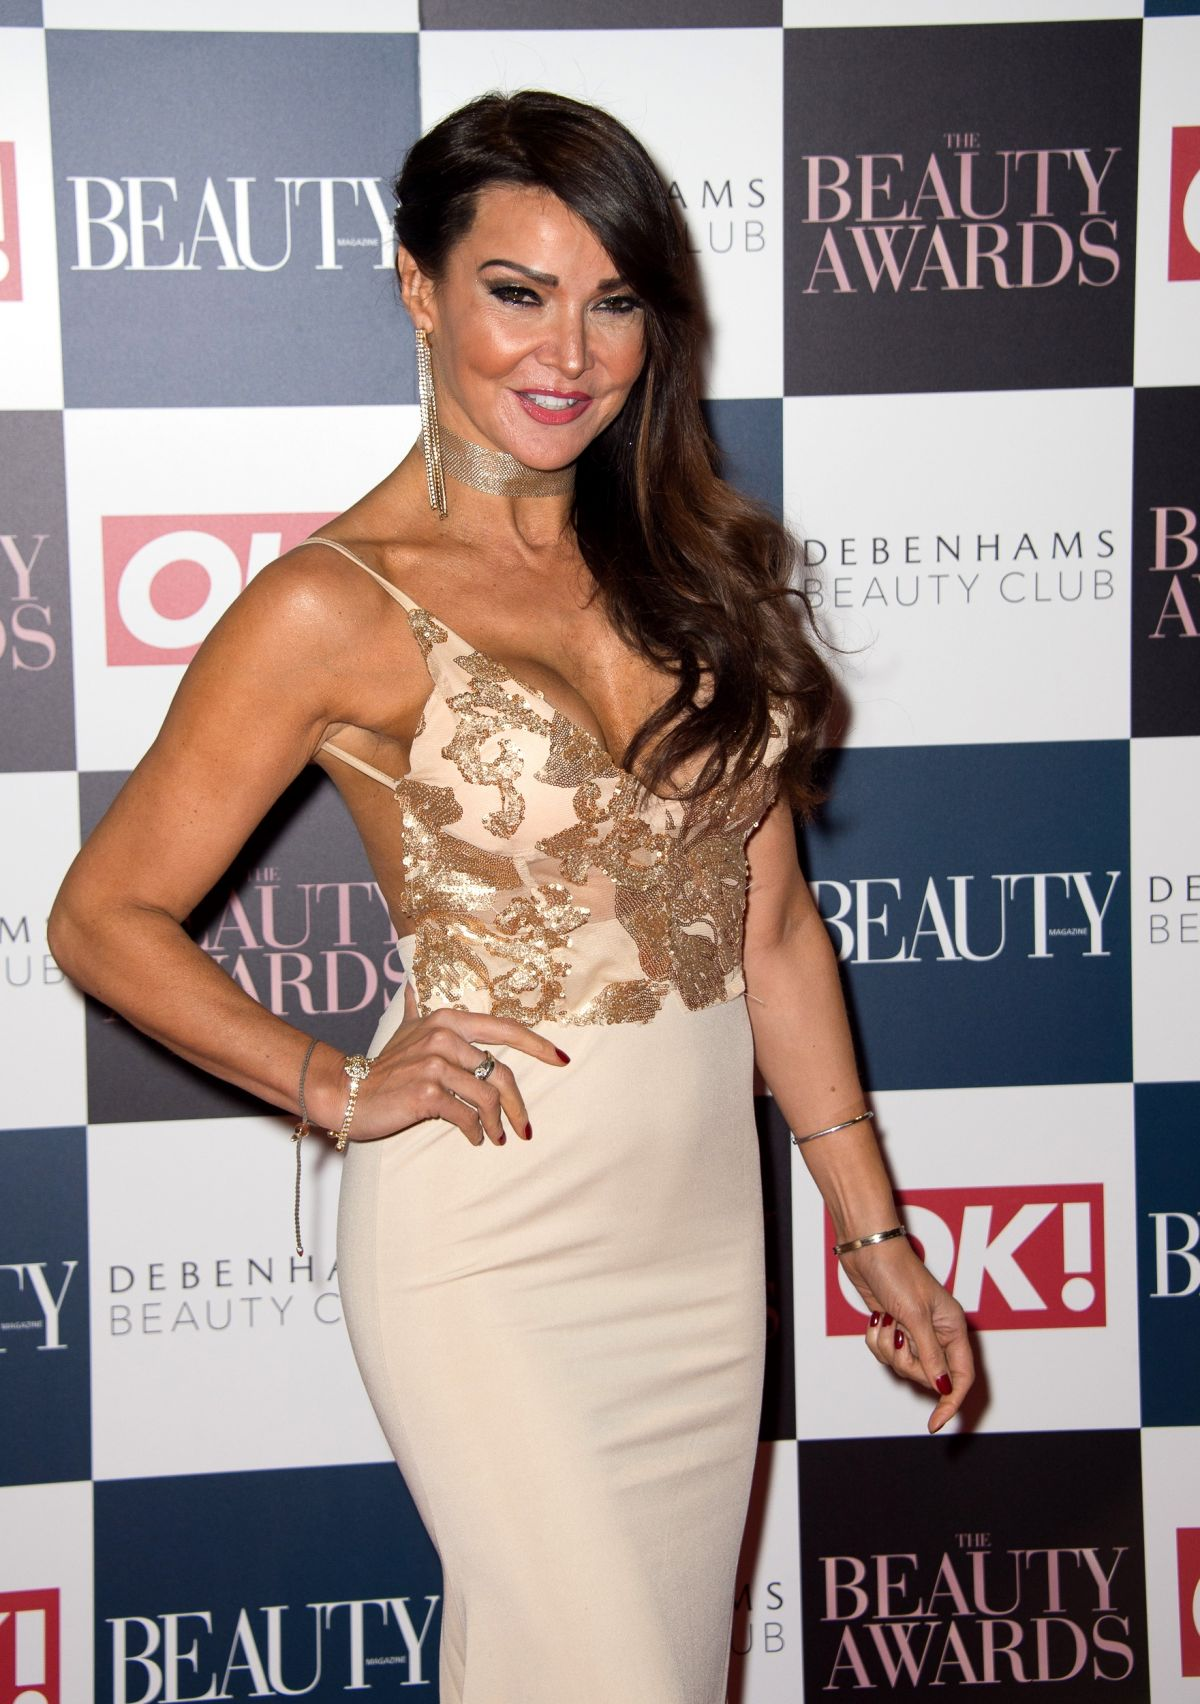 LIZZIE CUNDY at OK! Beauty Awards in London 11/24/2016